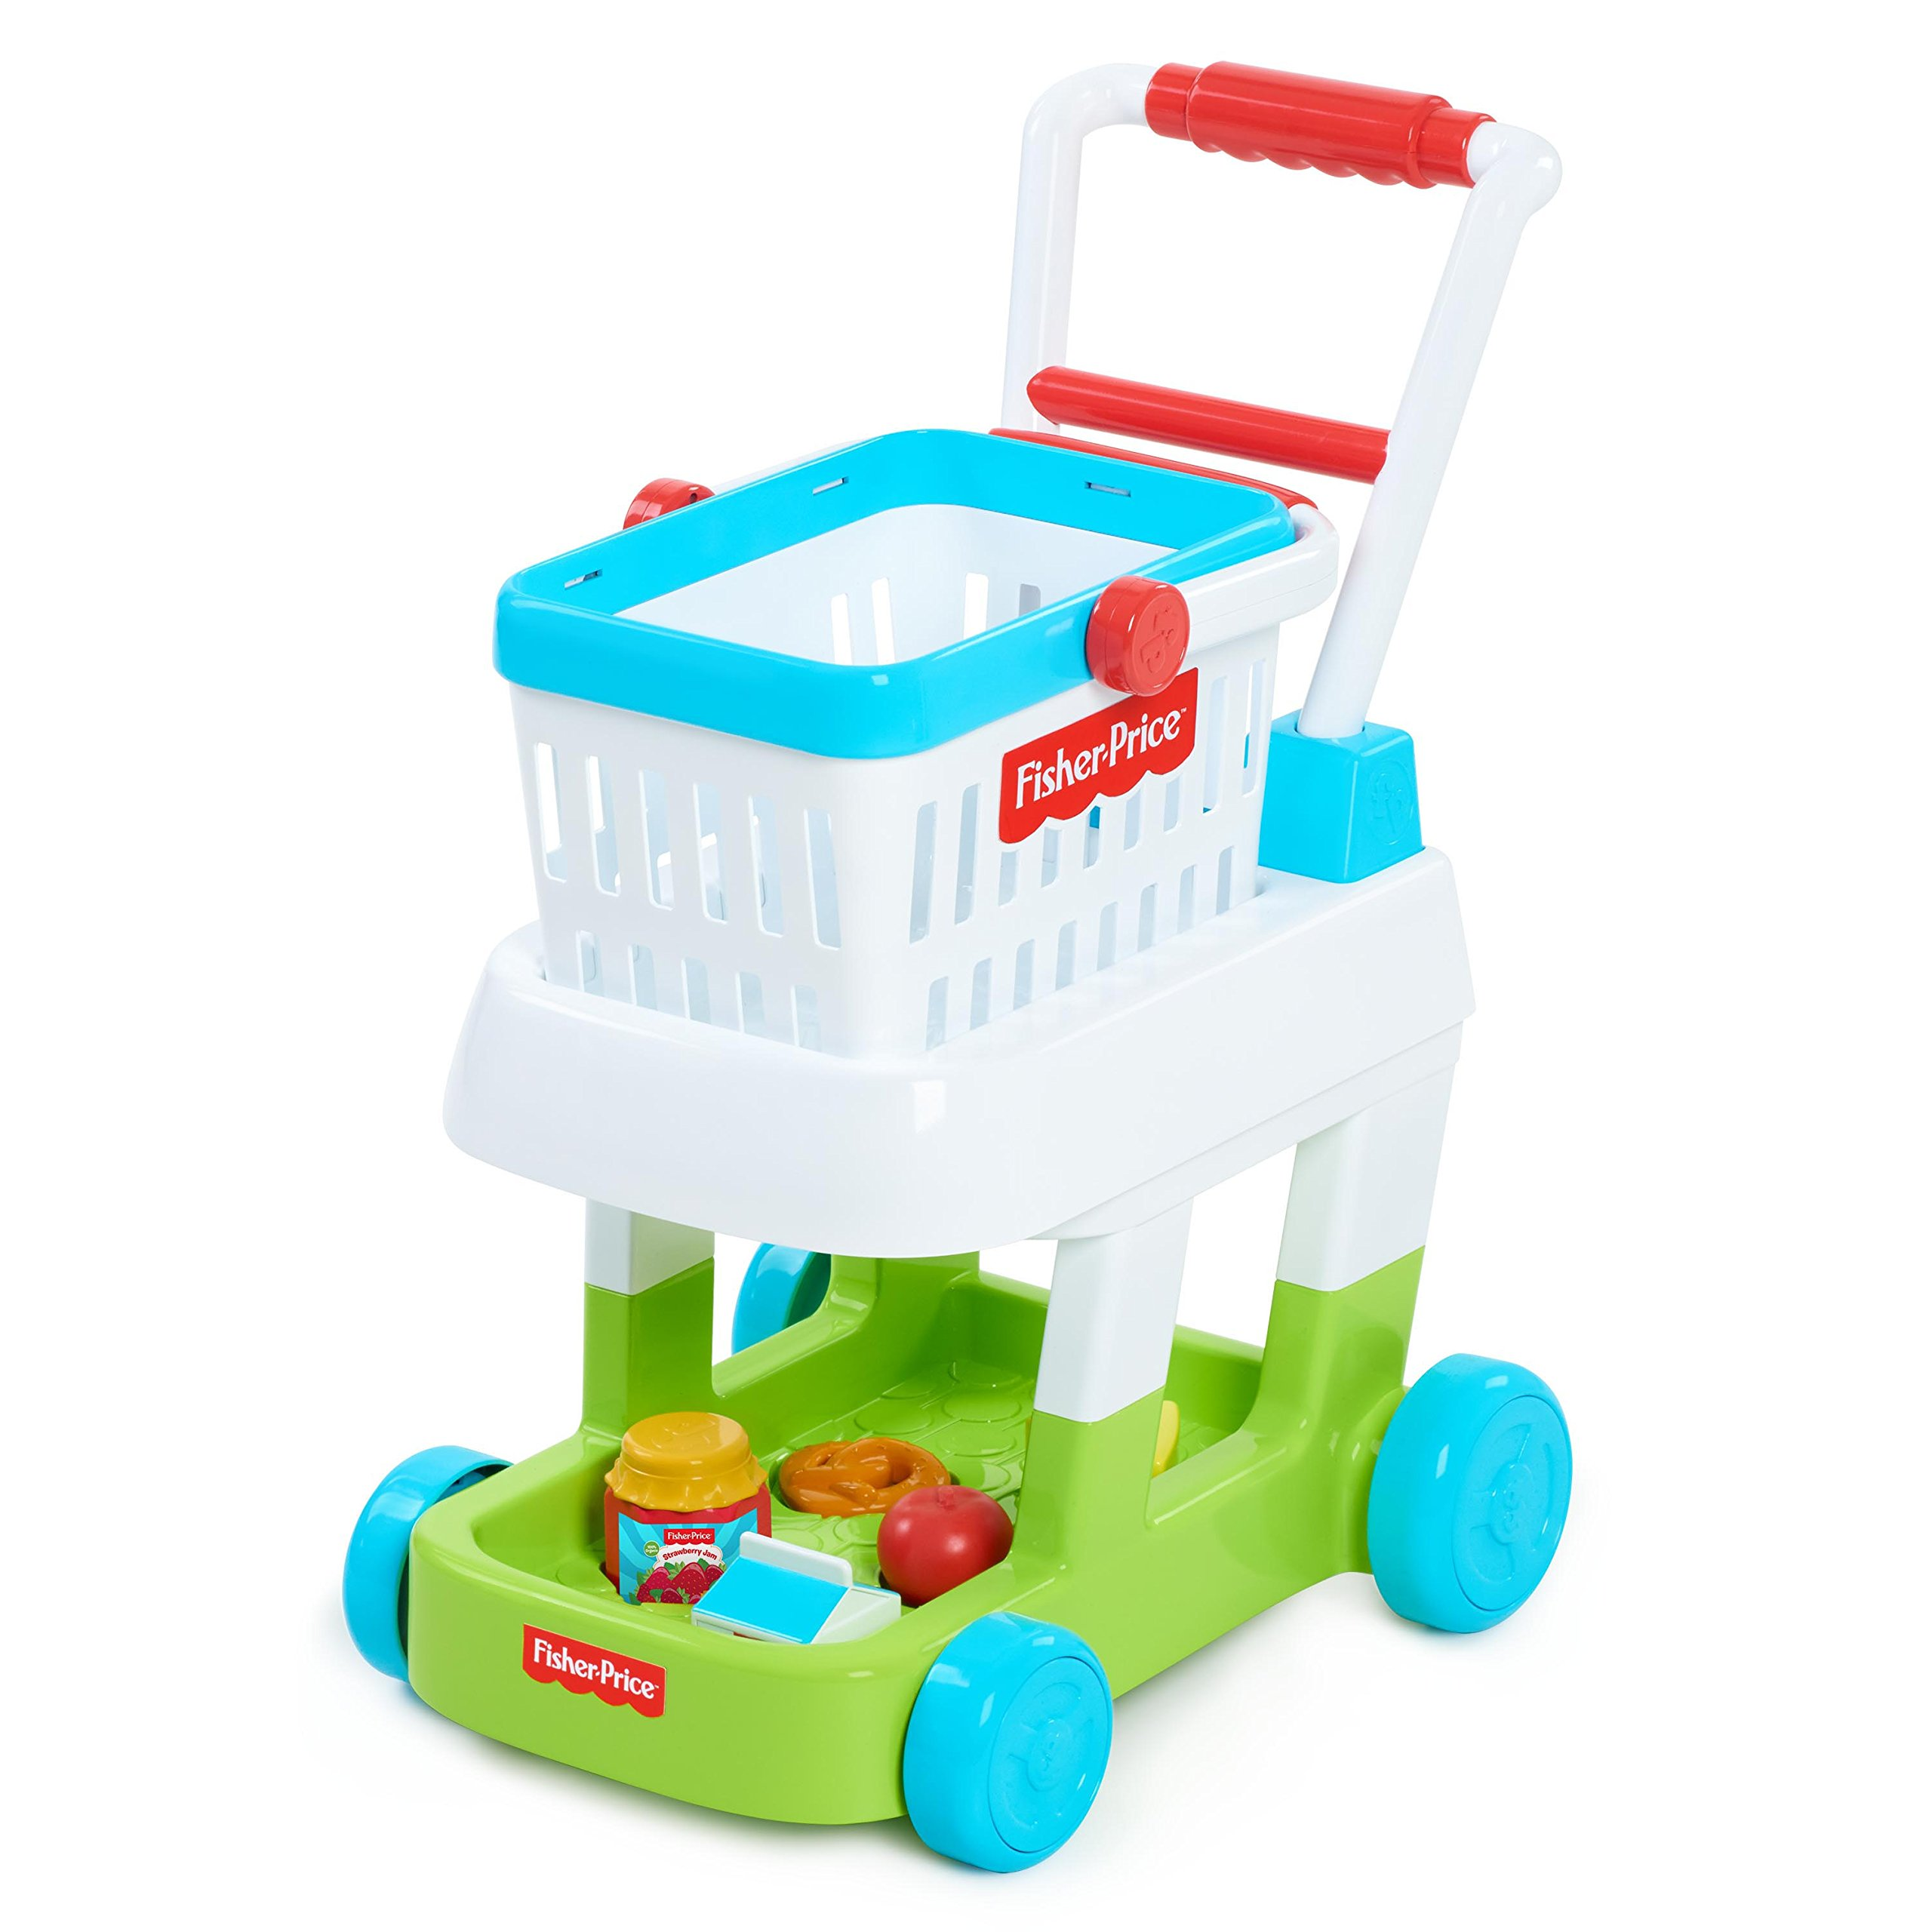 Fisher-Price 93525 Shopping Cart Toys, Multicolor